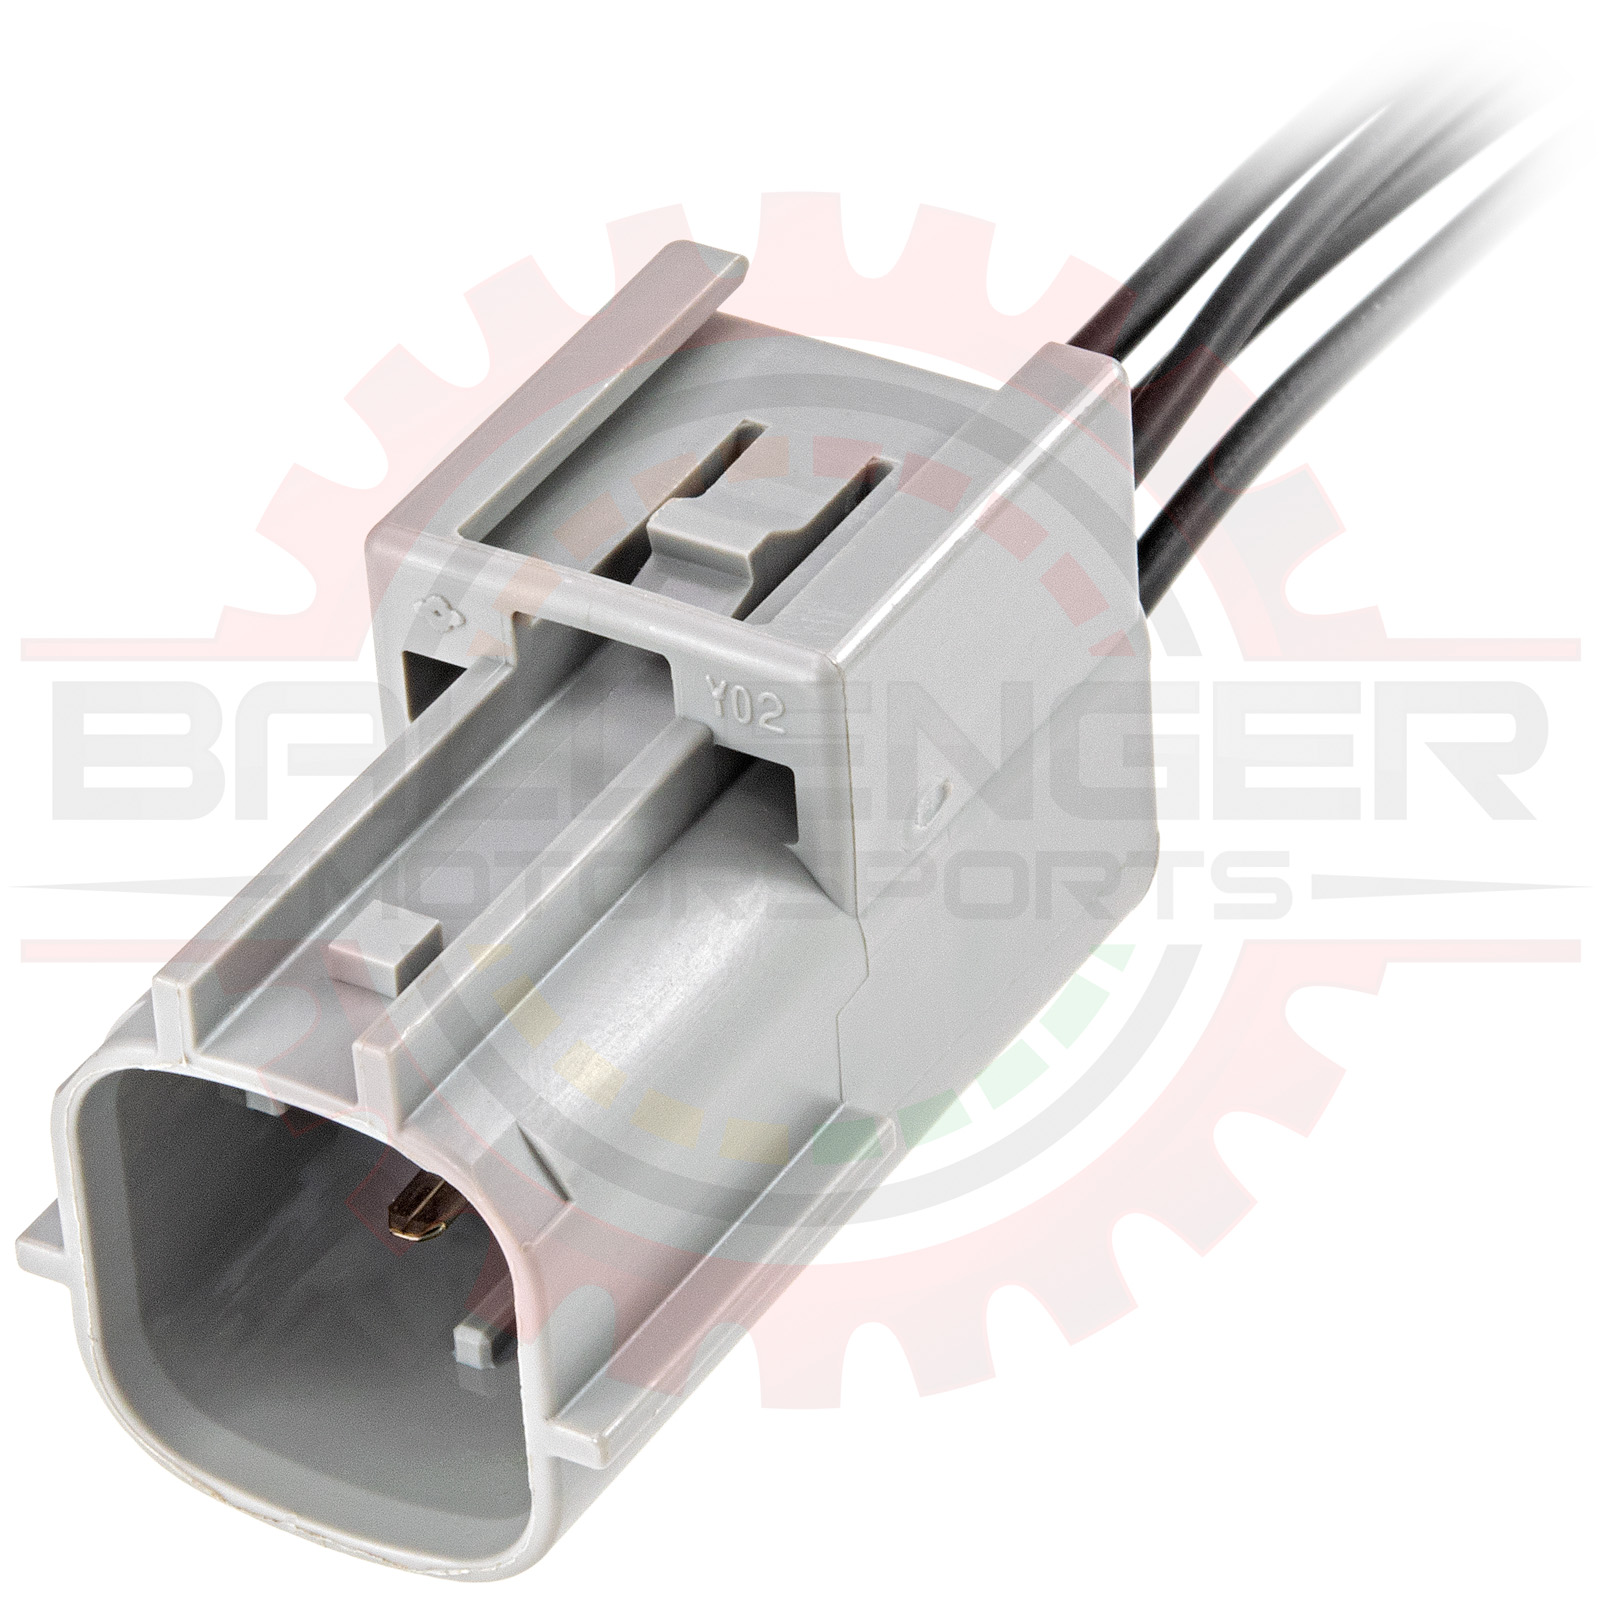 4 Way RS Series Inline Receptacle Connector Pigtail Why Pigtail Wiring on